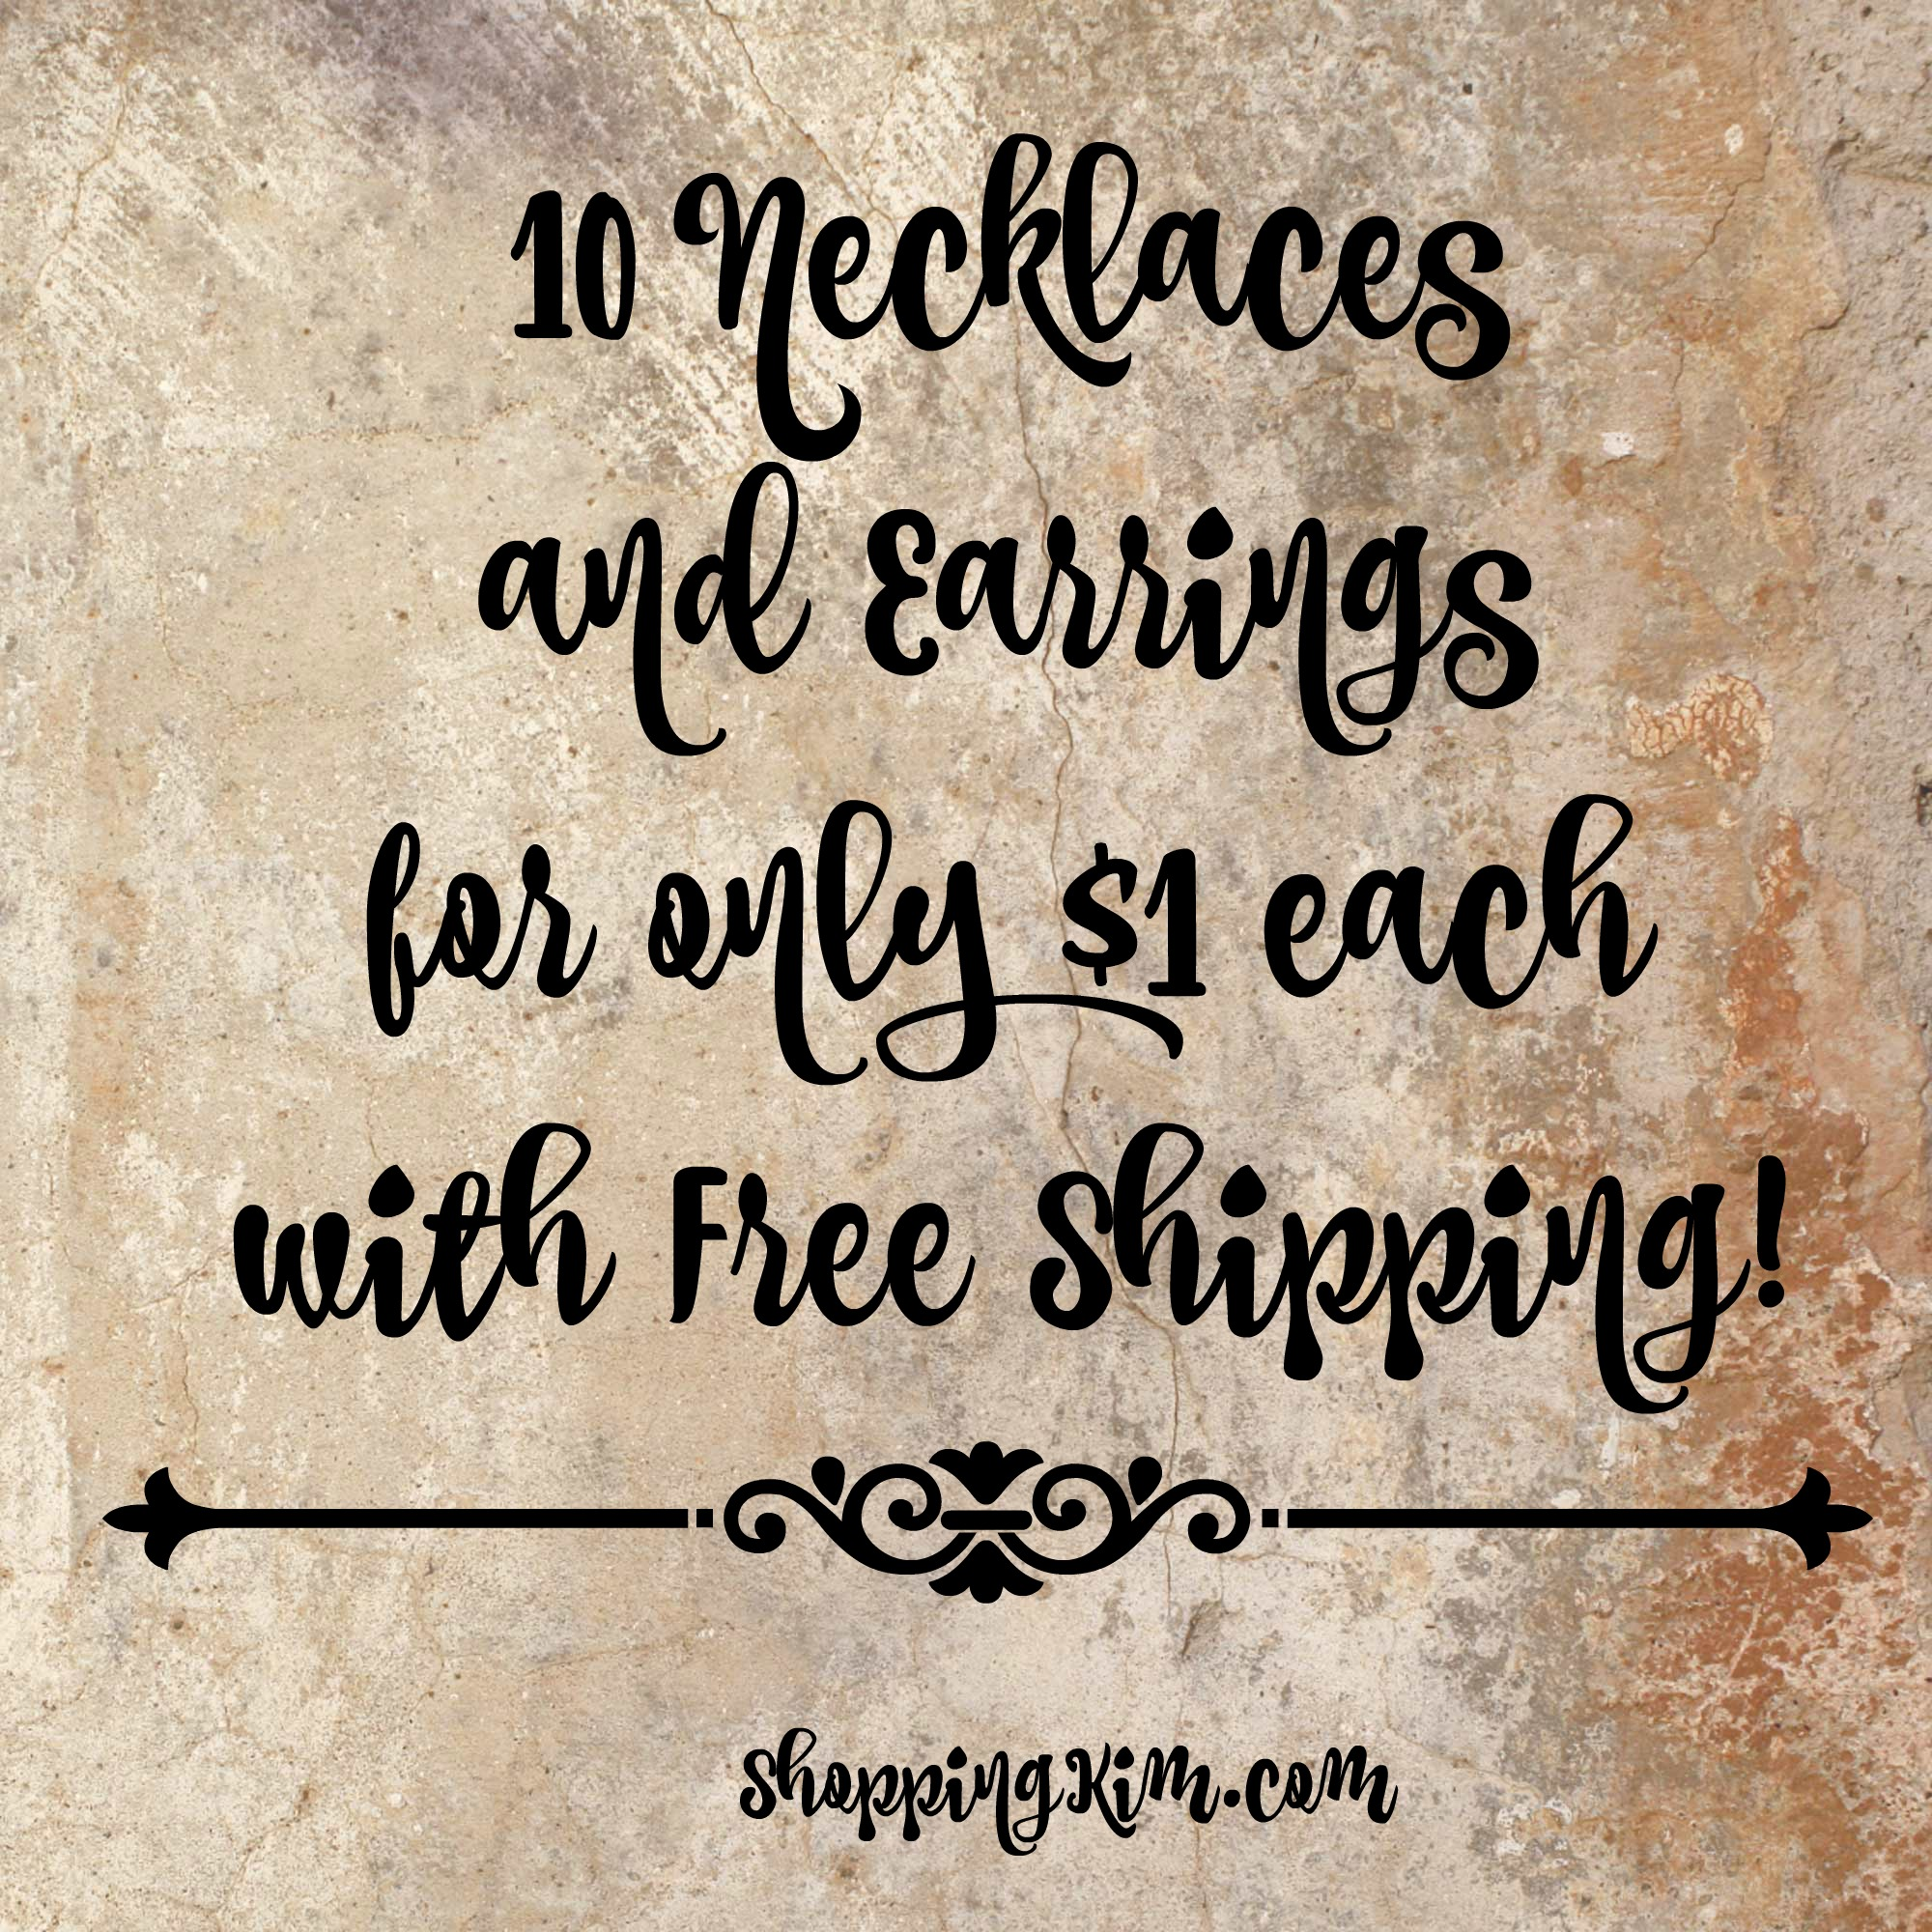 10 Necklaces & Earrings only $1 each with Free Shipping